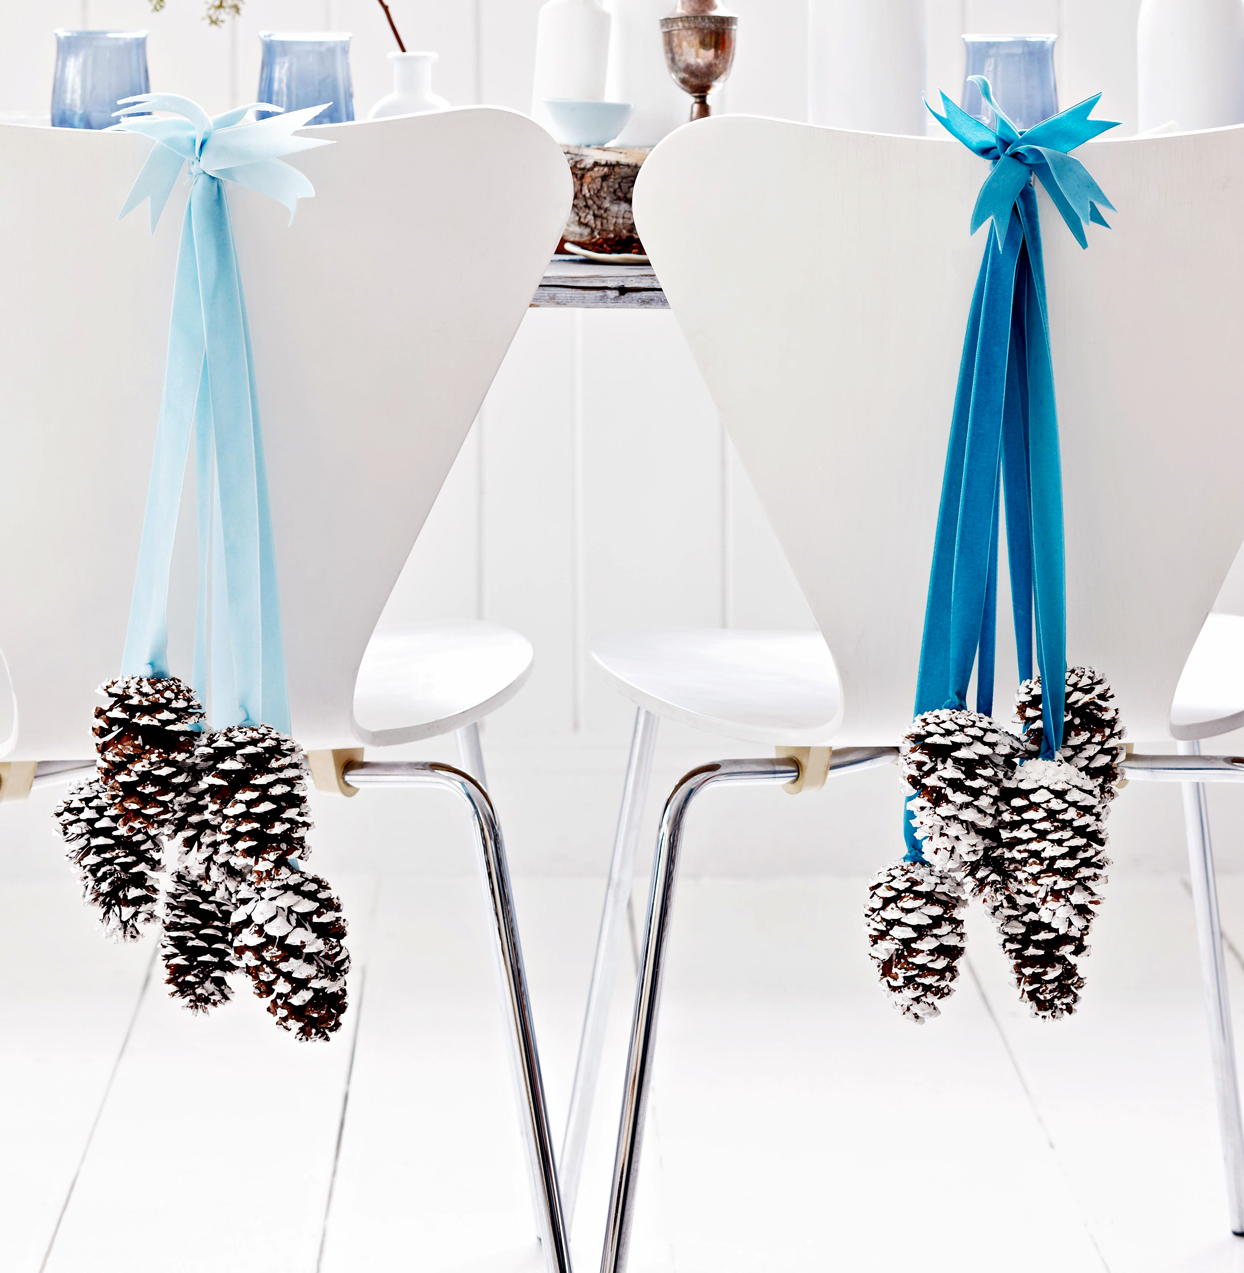 Pinecones-and-Ribbon Decoration